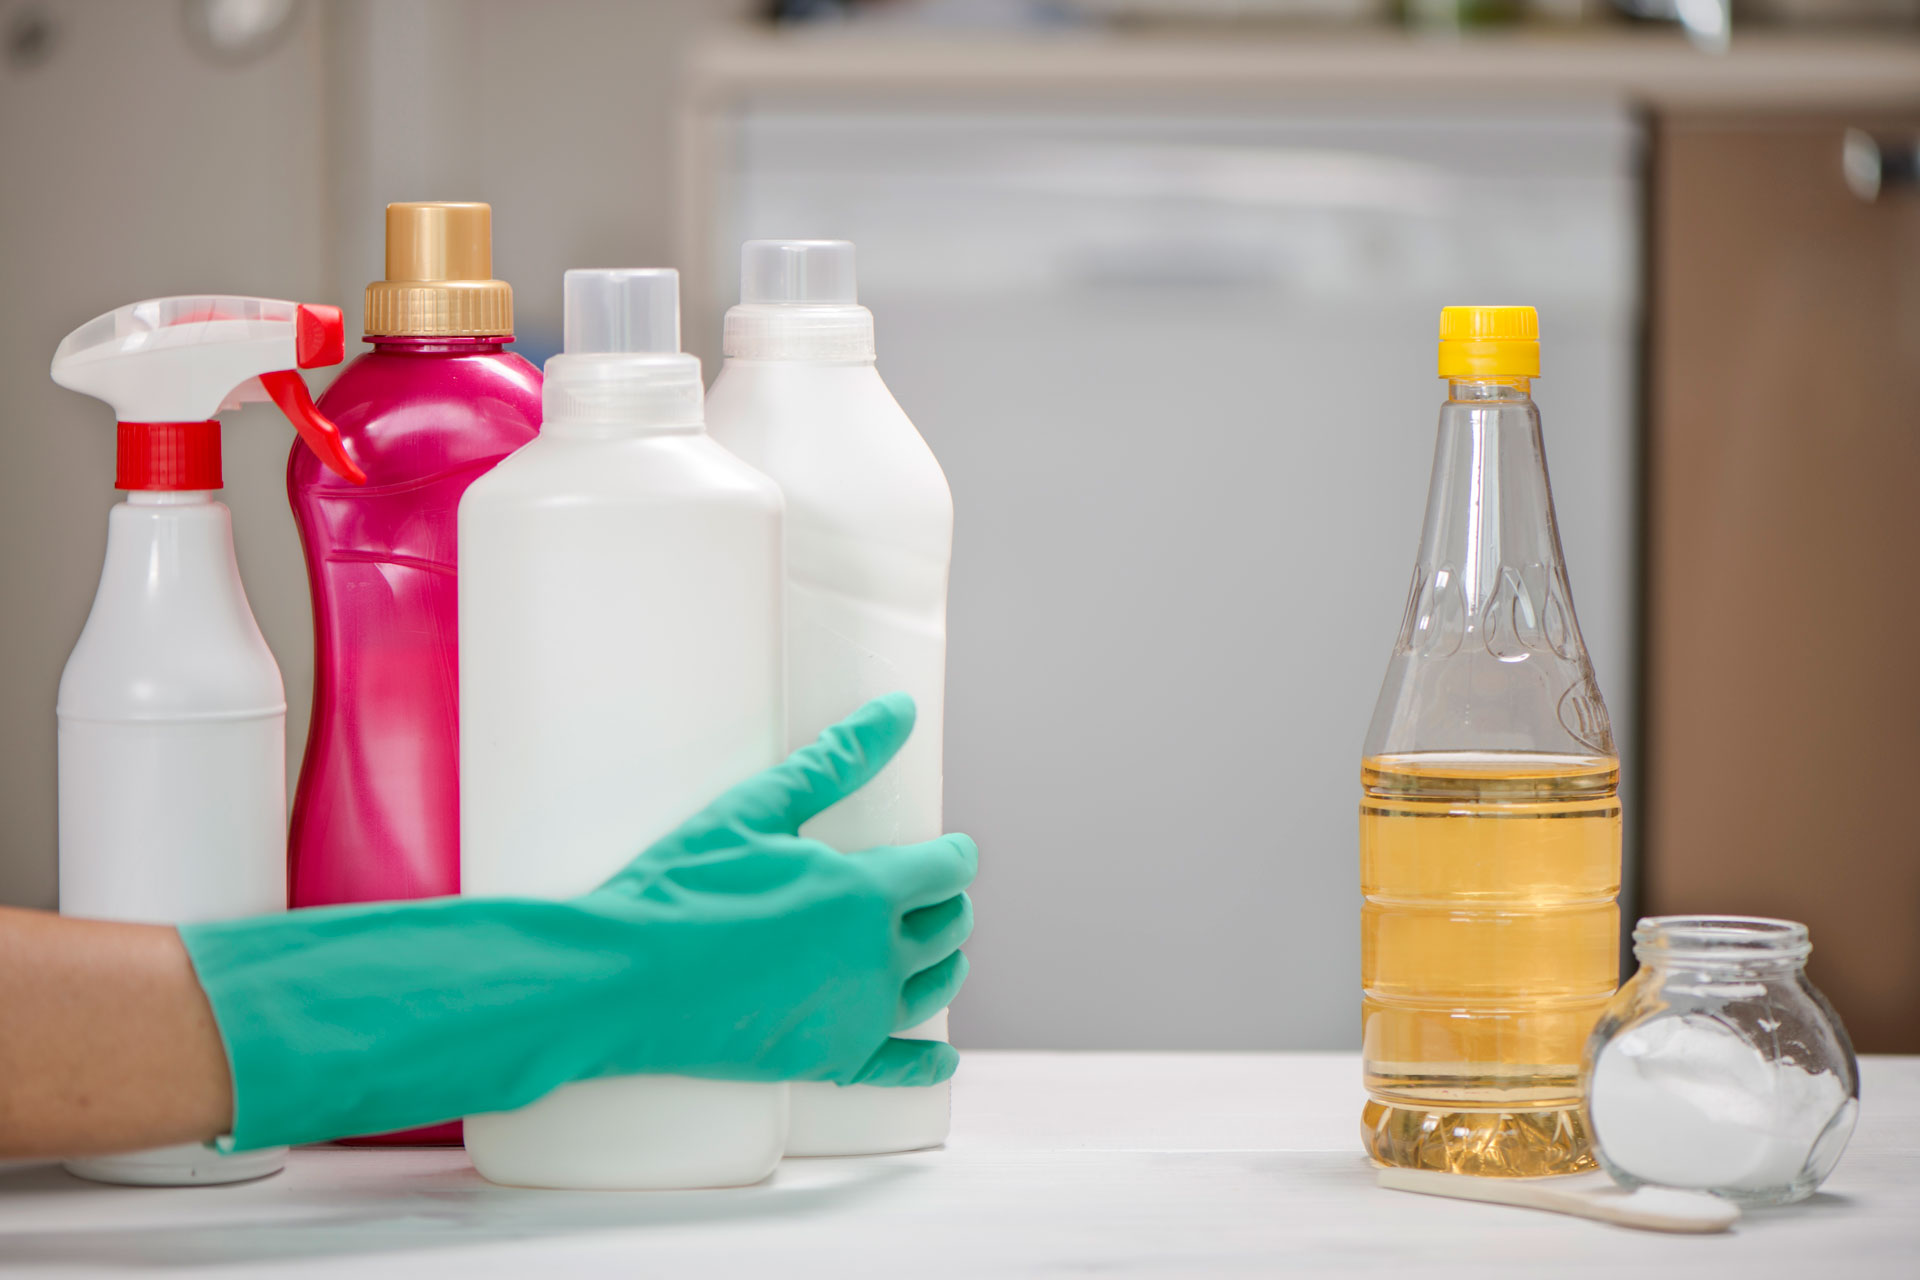 Vinegar Cleaning Tips – 8 things you didn't know you could clean with vinegar